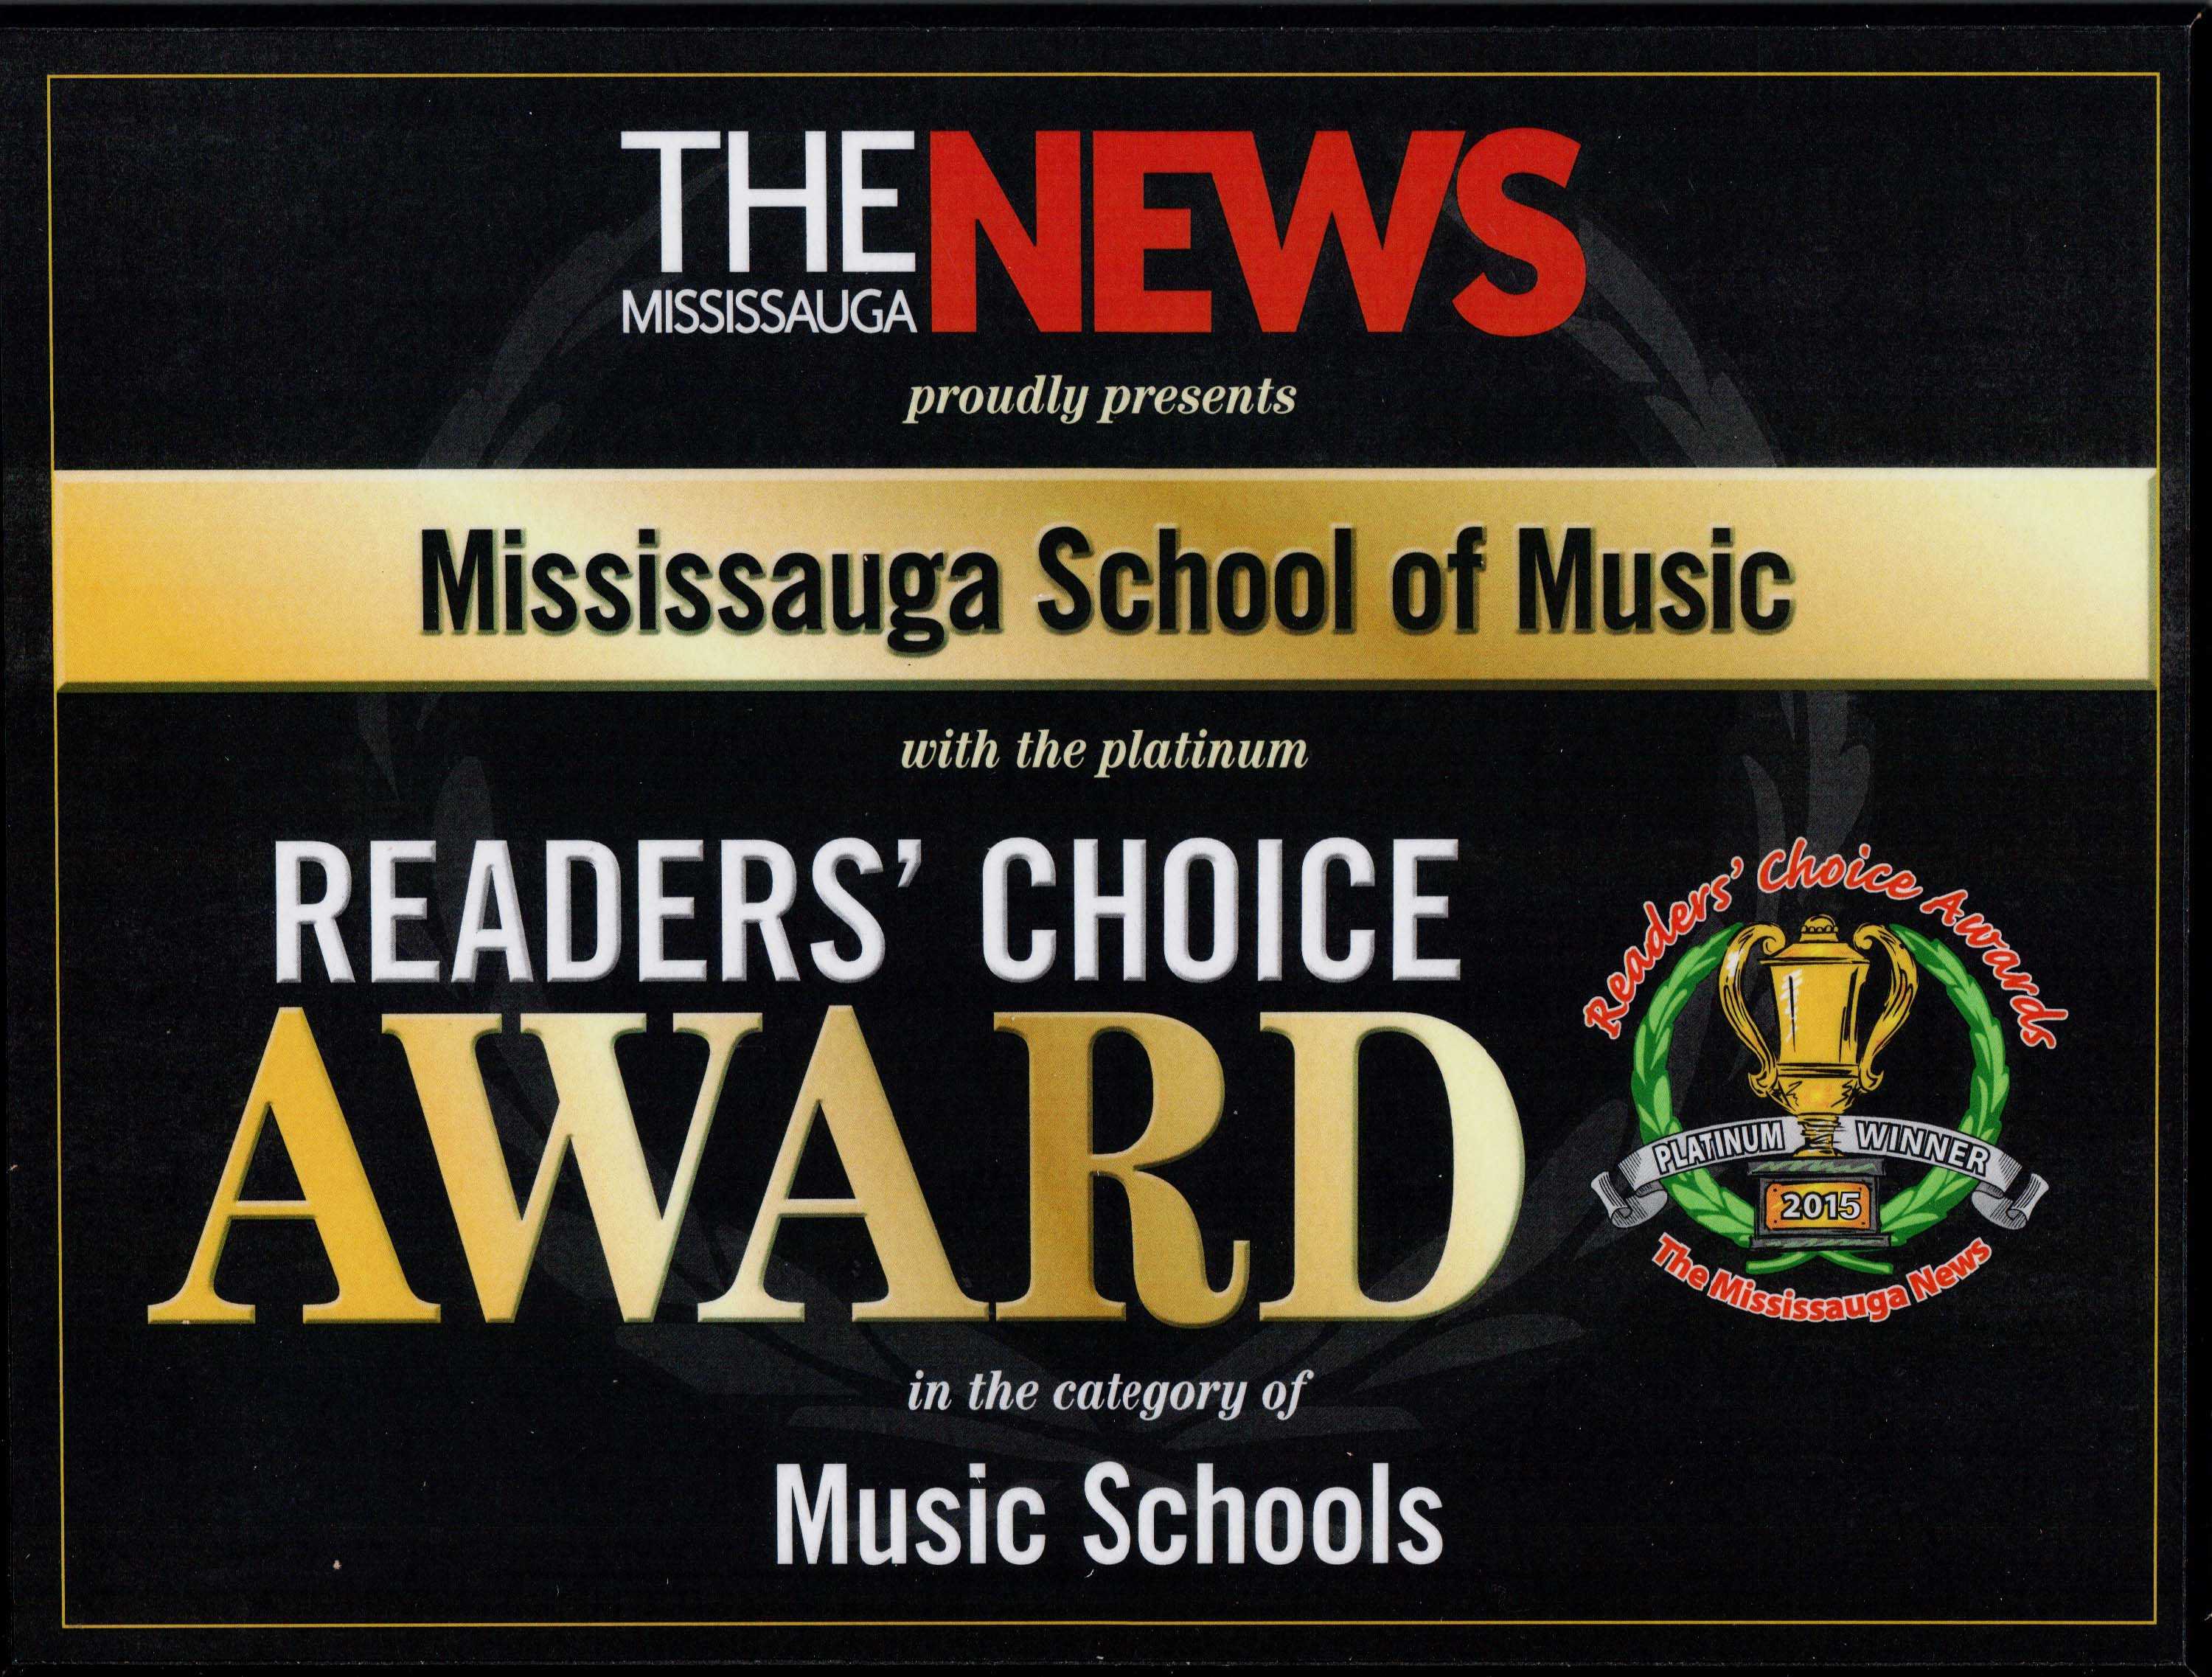 mississauga-school-of-music-readers-choice-2015.jpg